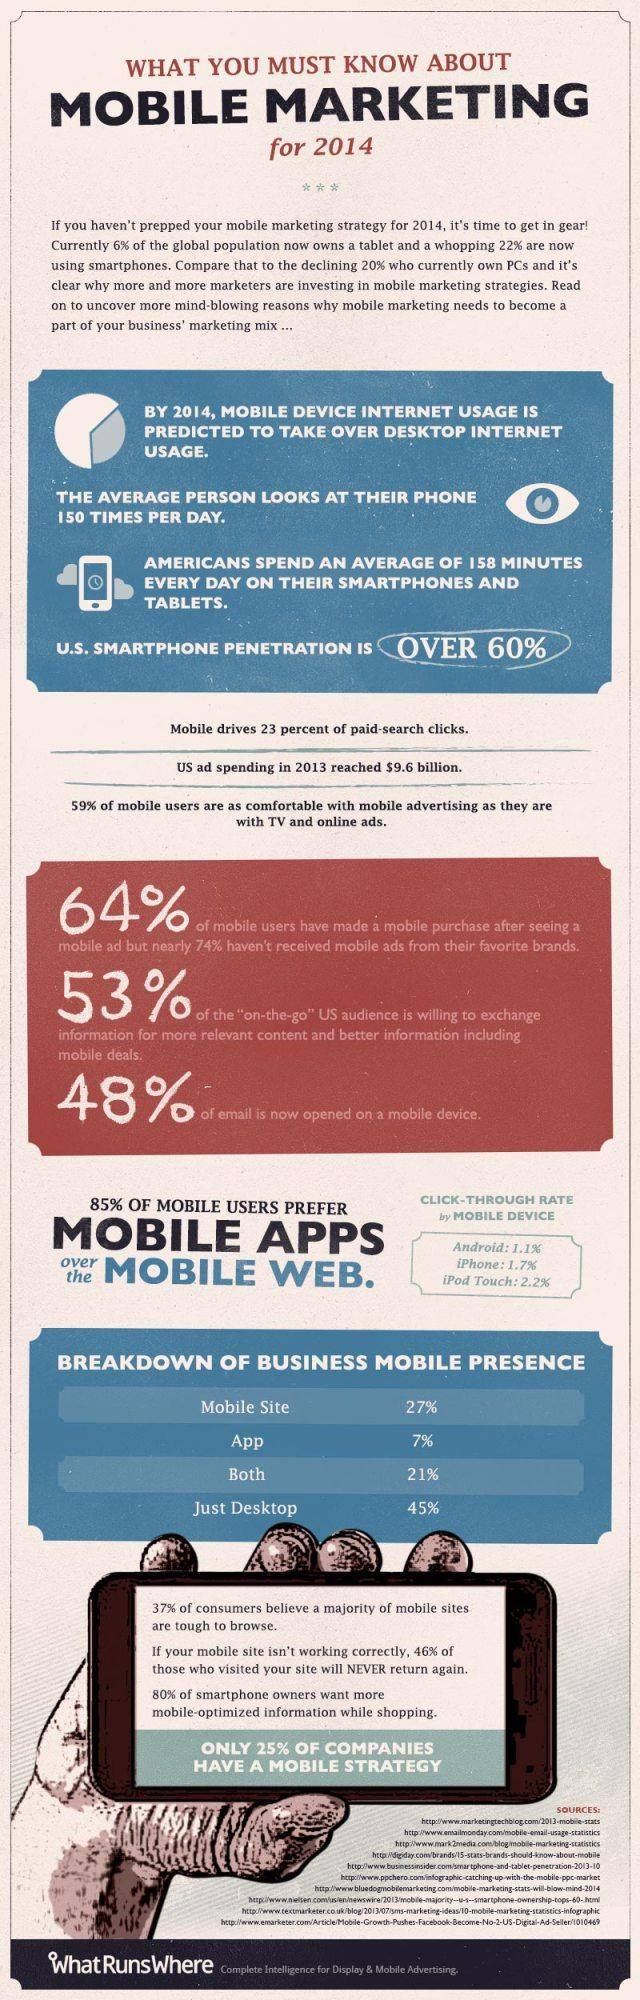 marketing-mobile-2014